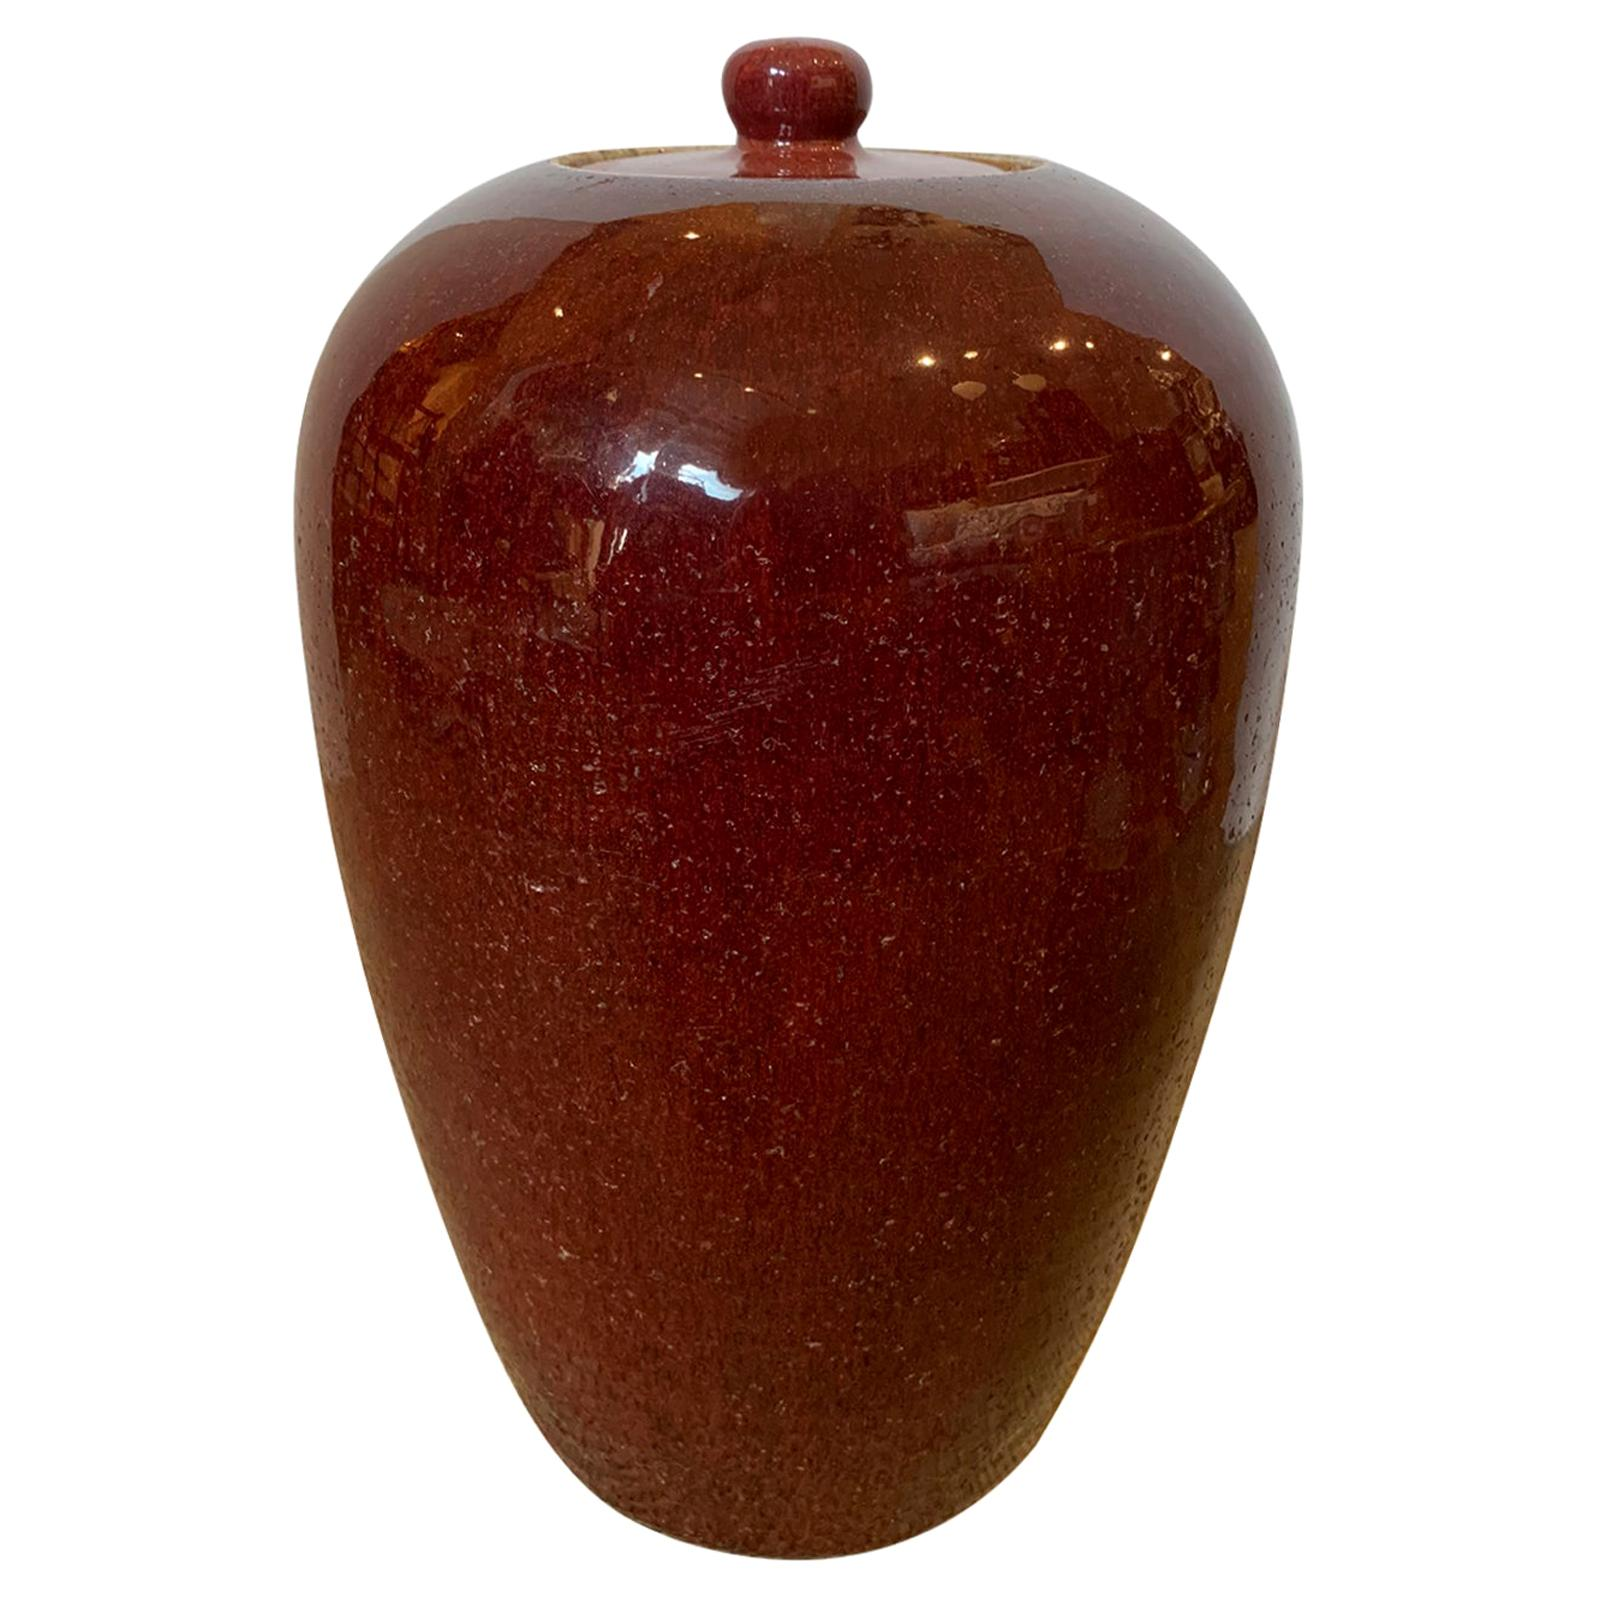 19th-20th Century Chinese Sang de Boeuf Ox Blood Red Flambe Glazed Vase